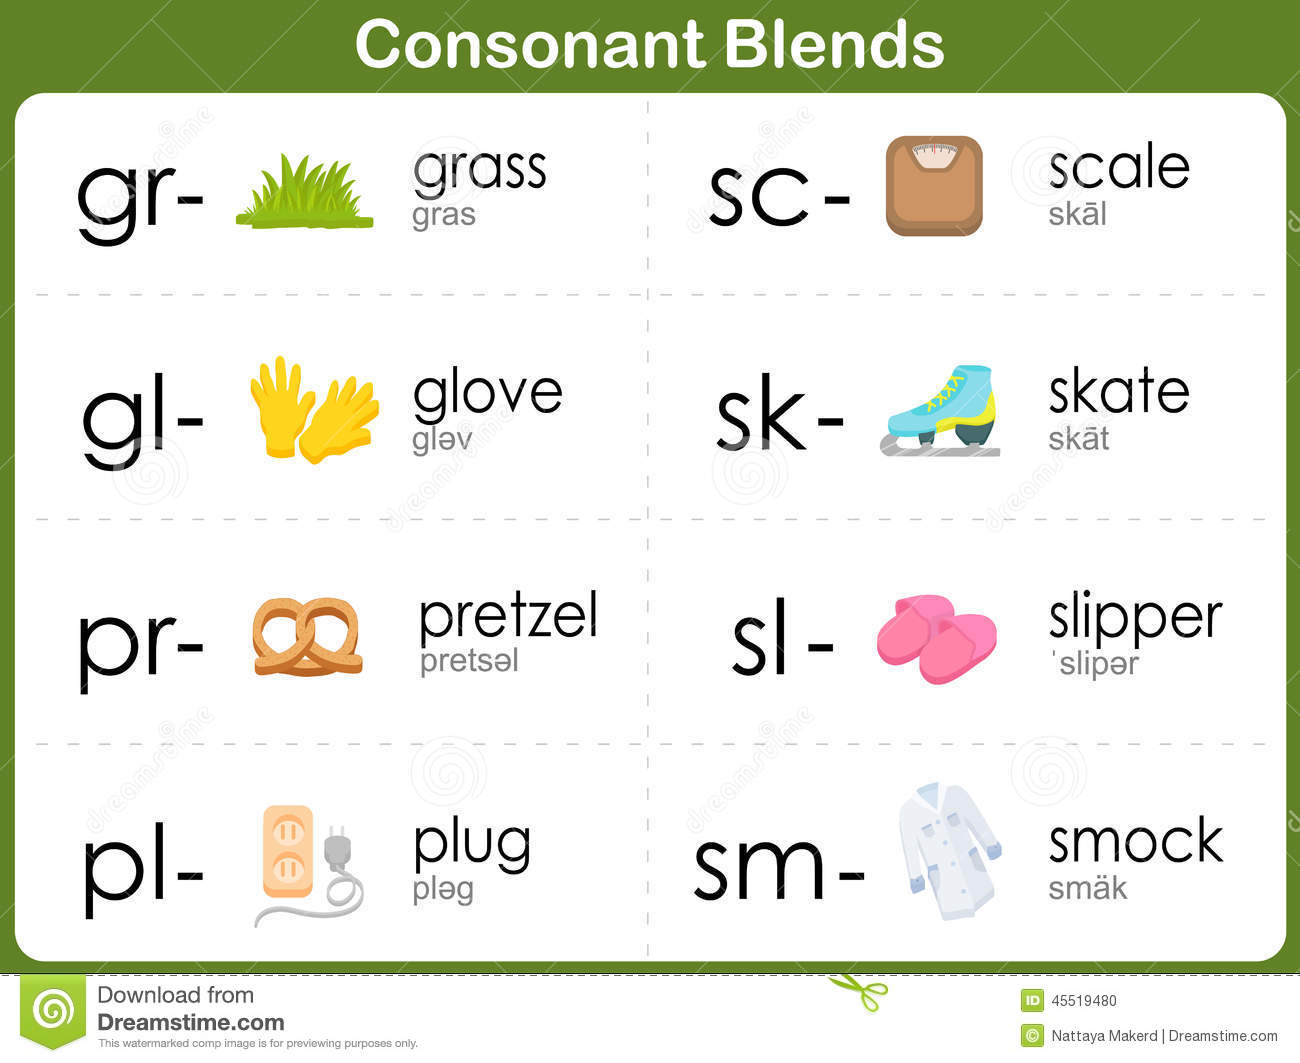 Worksheets Consonant Blends Worksheets consonant blends worksheet for kids illustration 45519480 megapixl